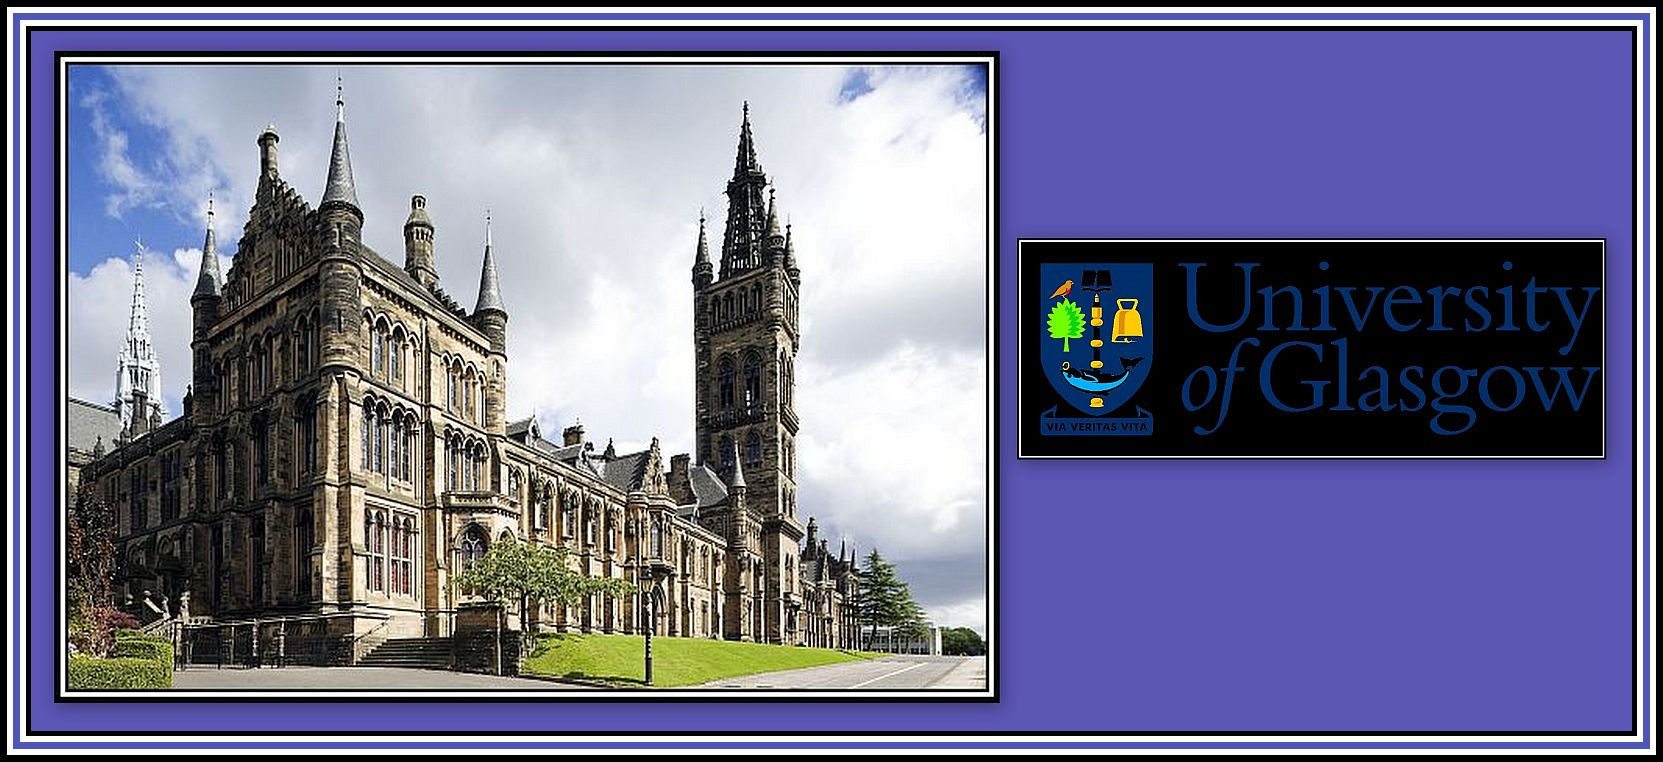 Univs. of Glasgow Collage